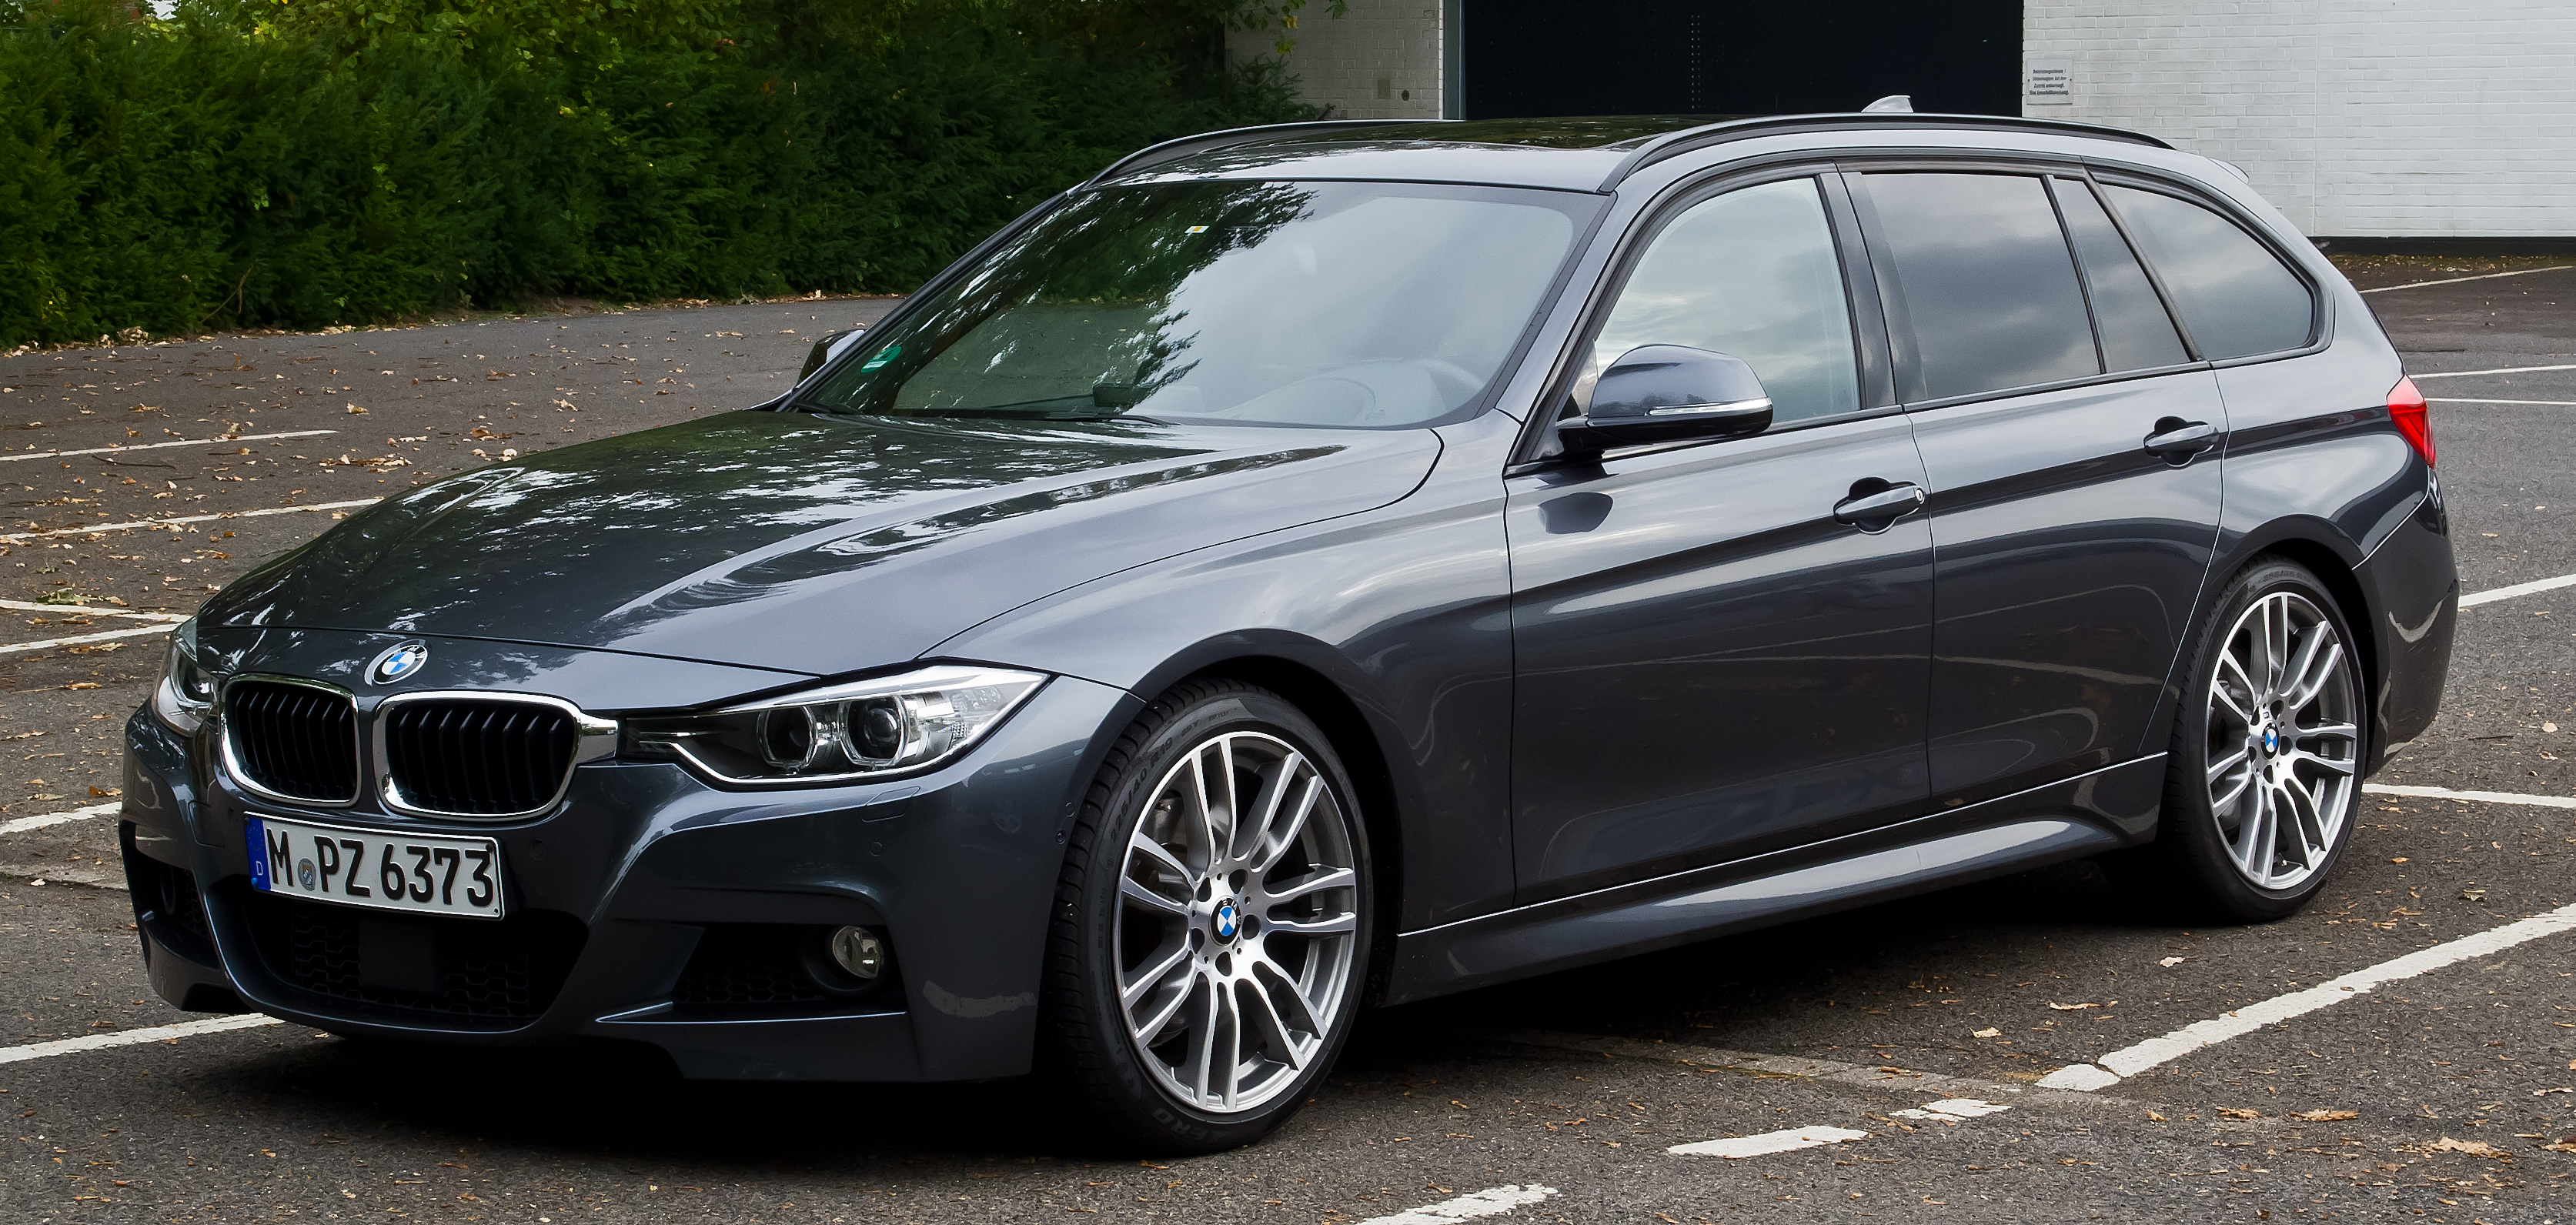 file bmw 330d touring m sportpaket f31 frontansicht 5 oktober 2013 m. Black Bedroom Furniture Sets. Home Design Ideas